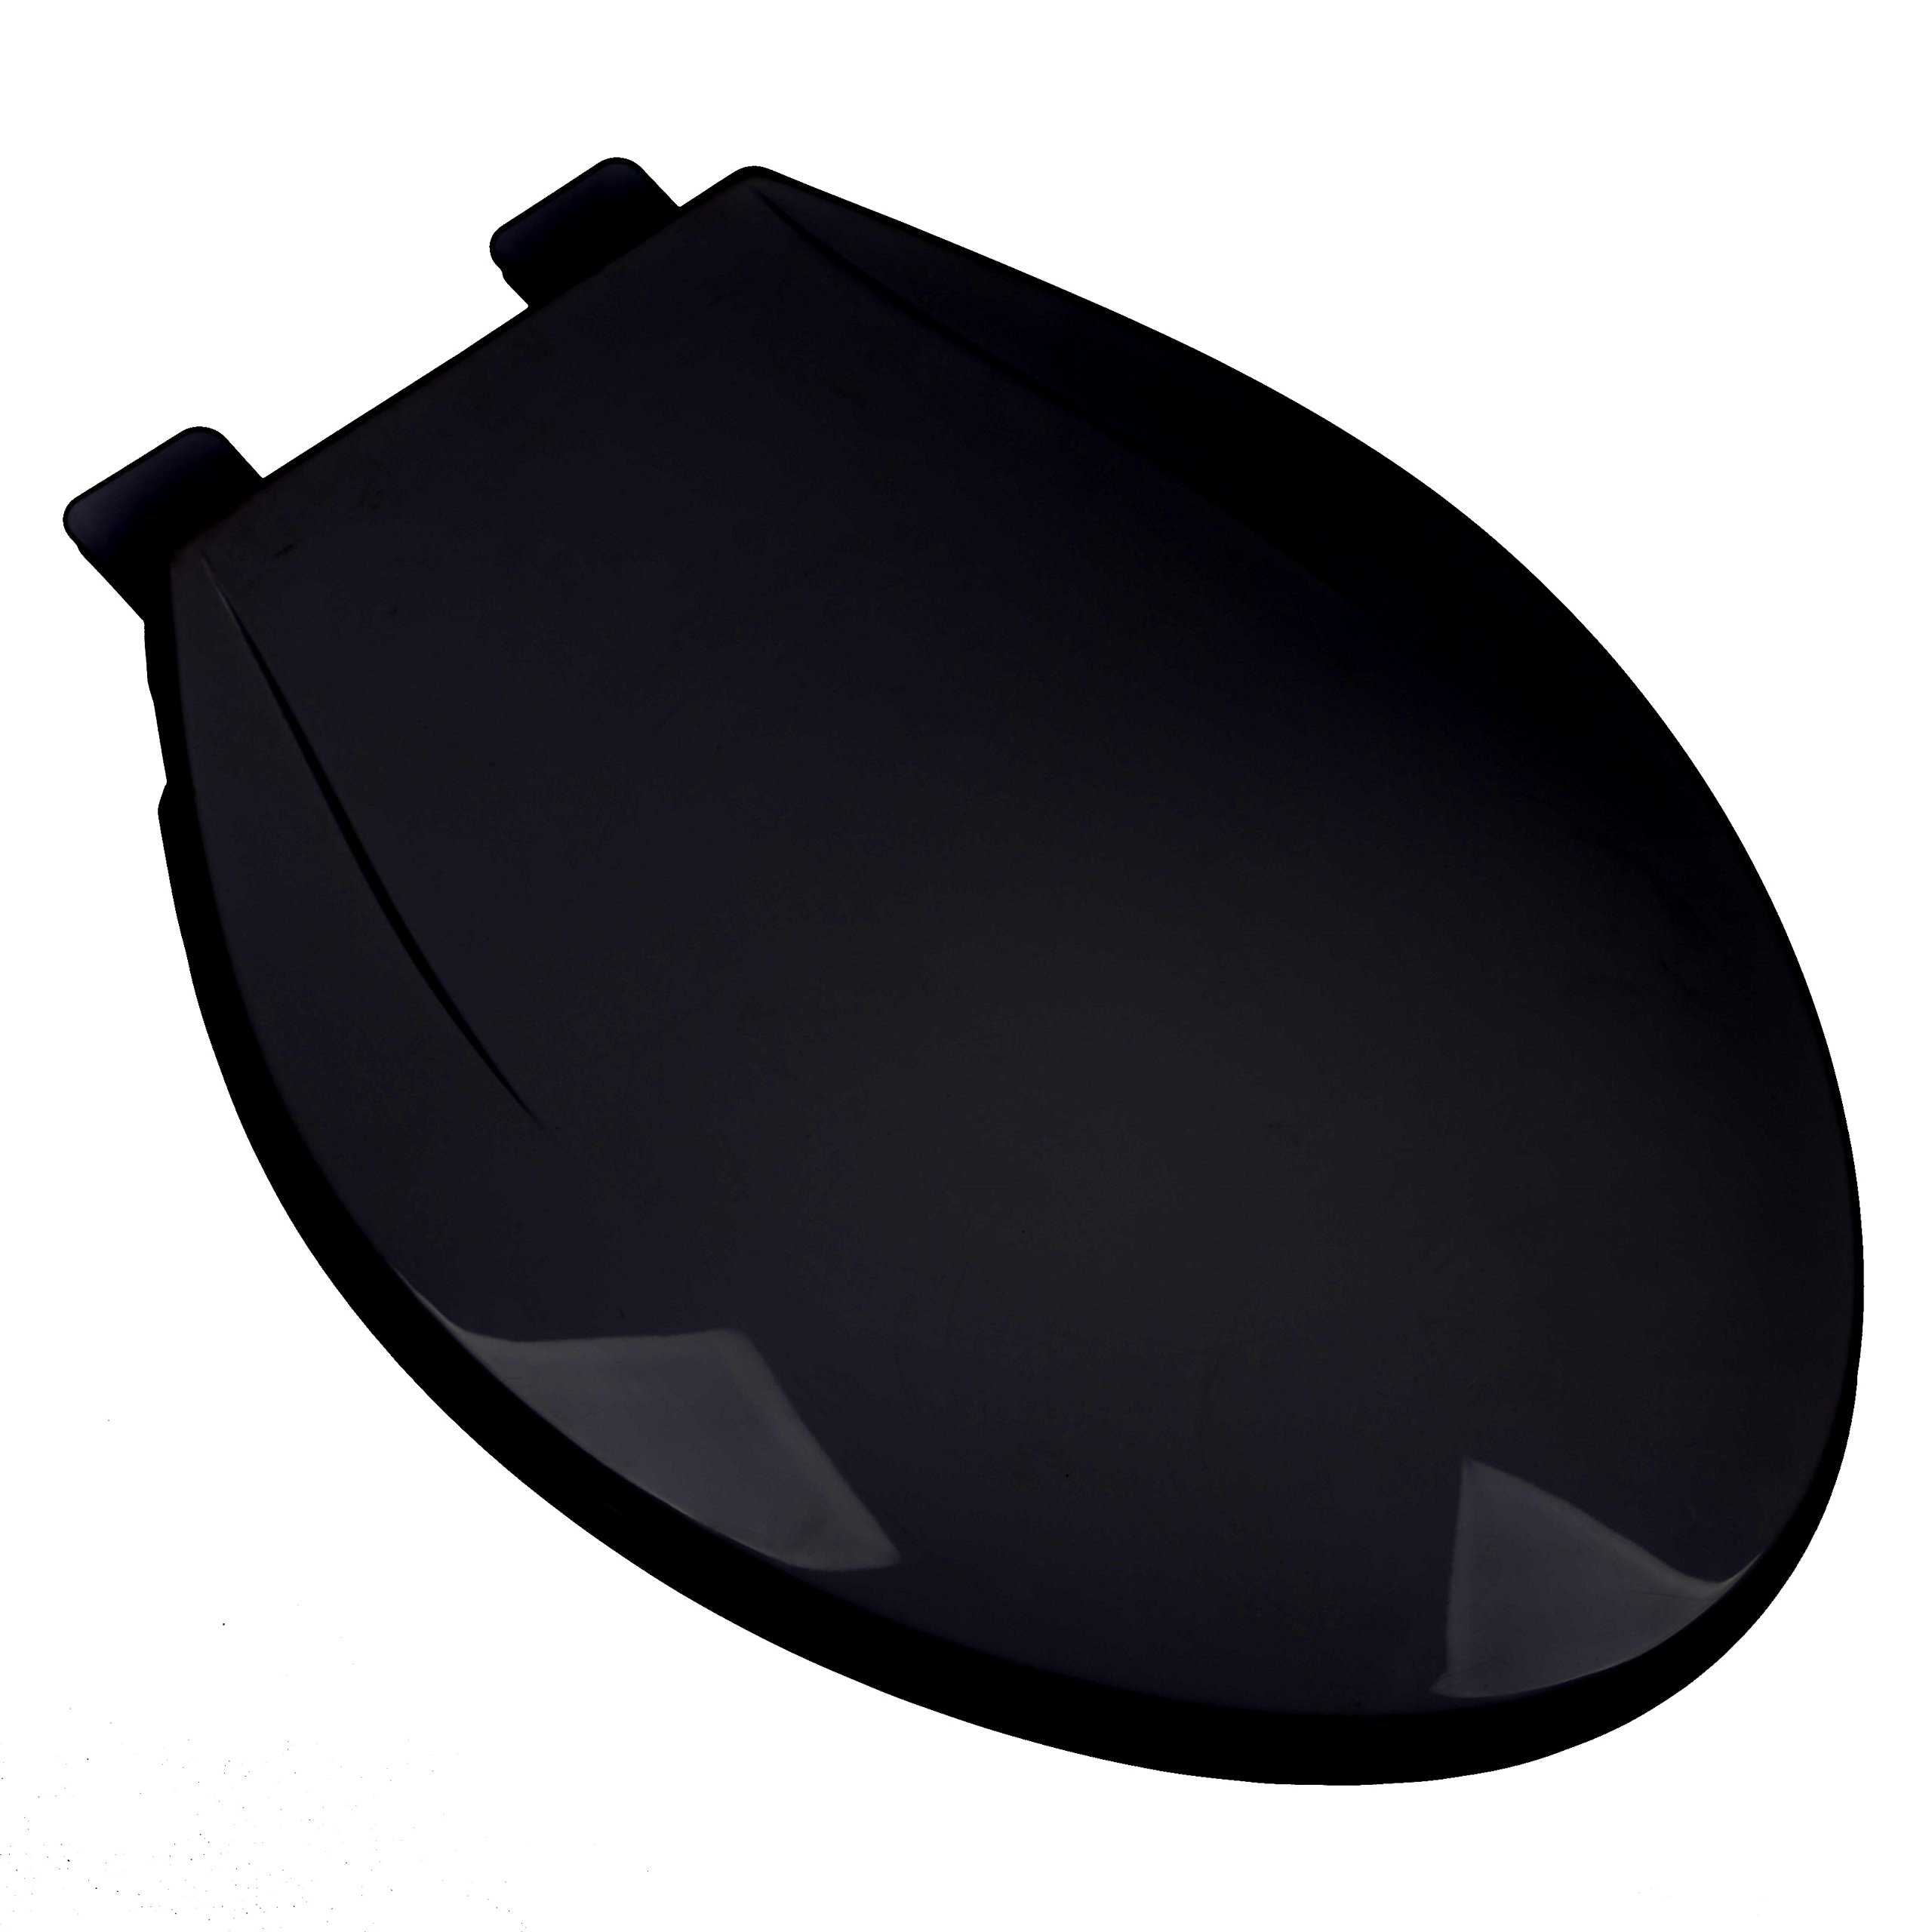 Bath Décor 2F1E6-90 Slow Close Plastic Elongated Top Mount Toilet Seat with Adjustable Release and Clean Hinge